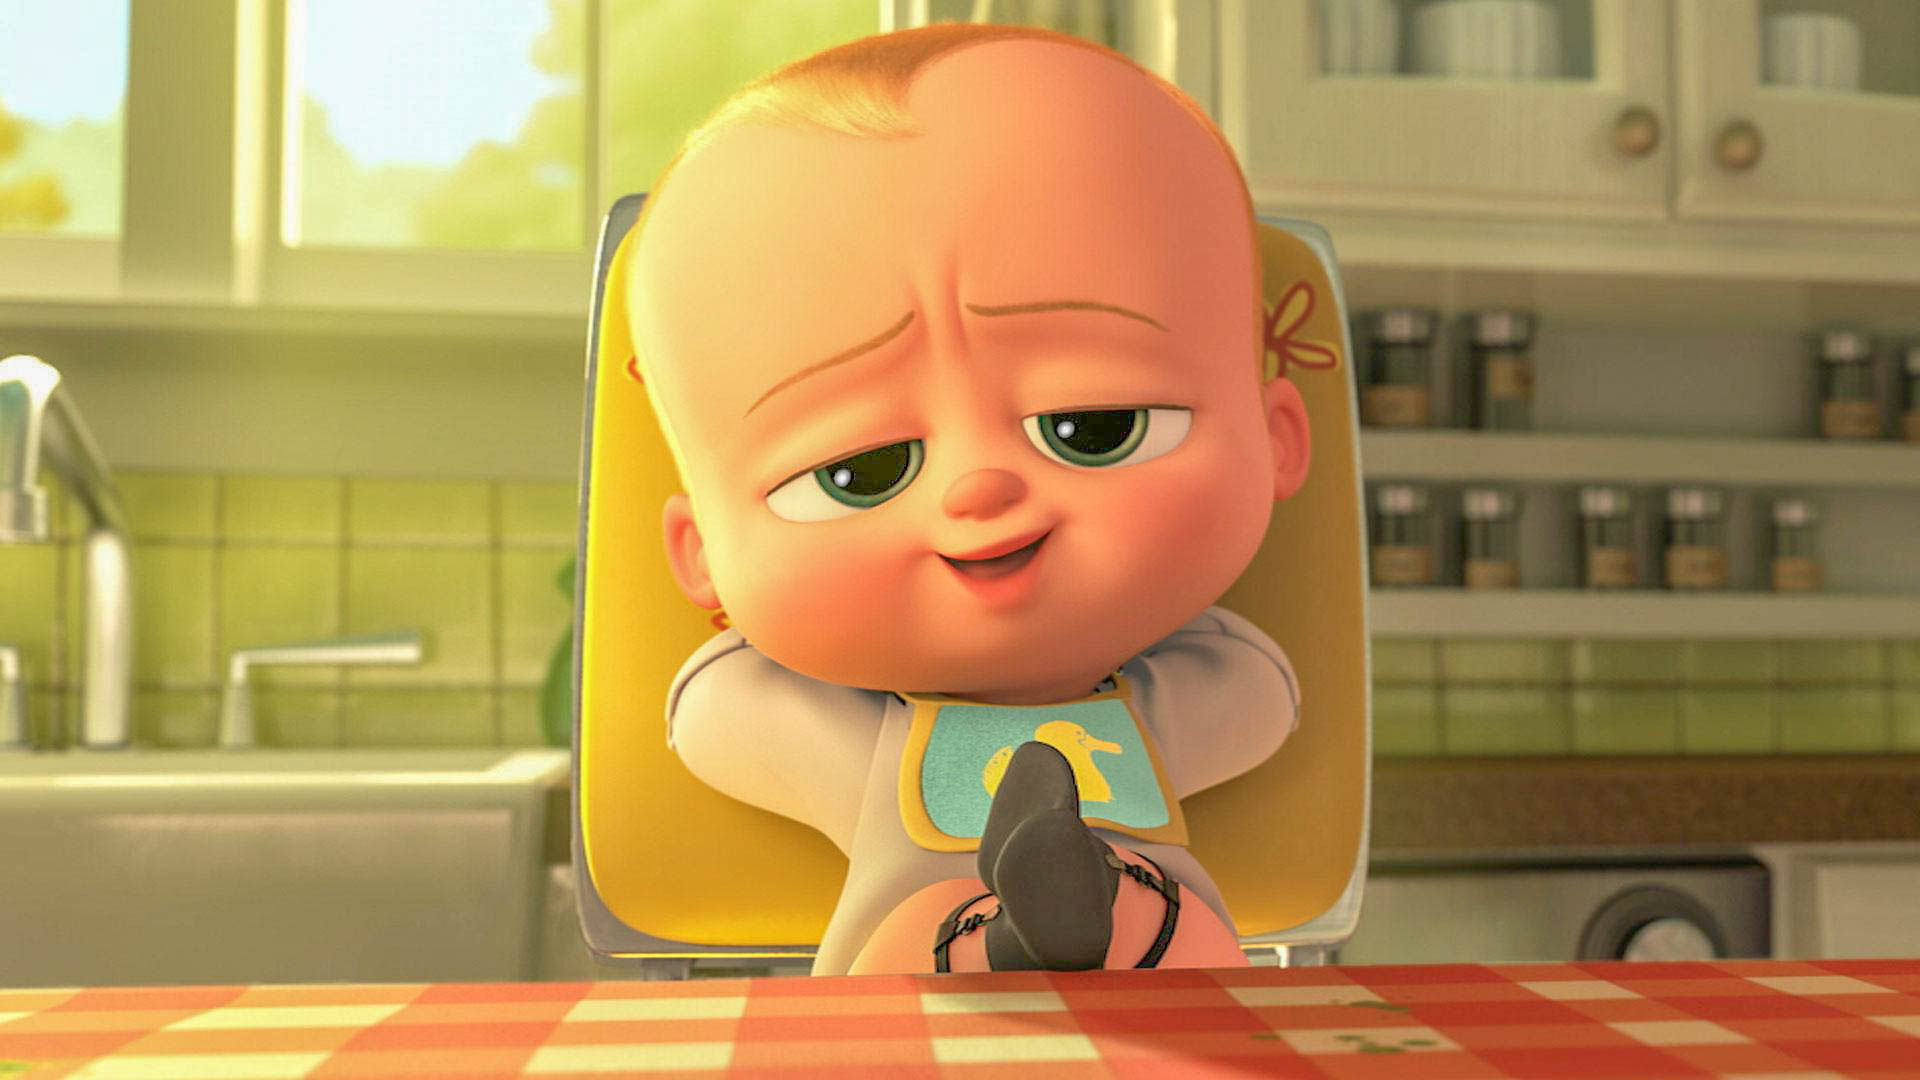 The boss baby high resolution wallpapers 2017 all hd wallpapers the boss baby high resolution wallpapers 2017 voltagebd Gallery